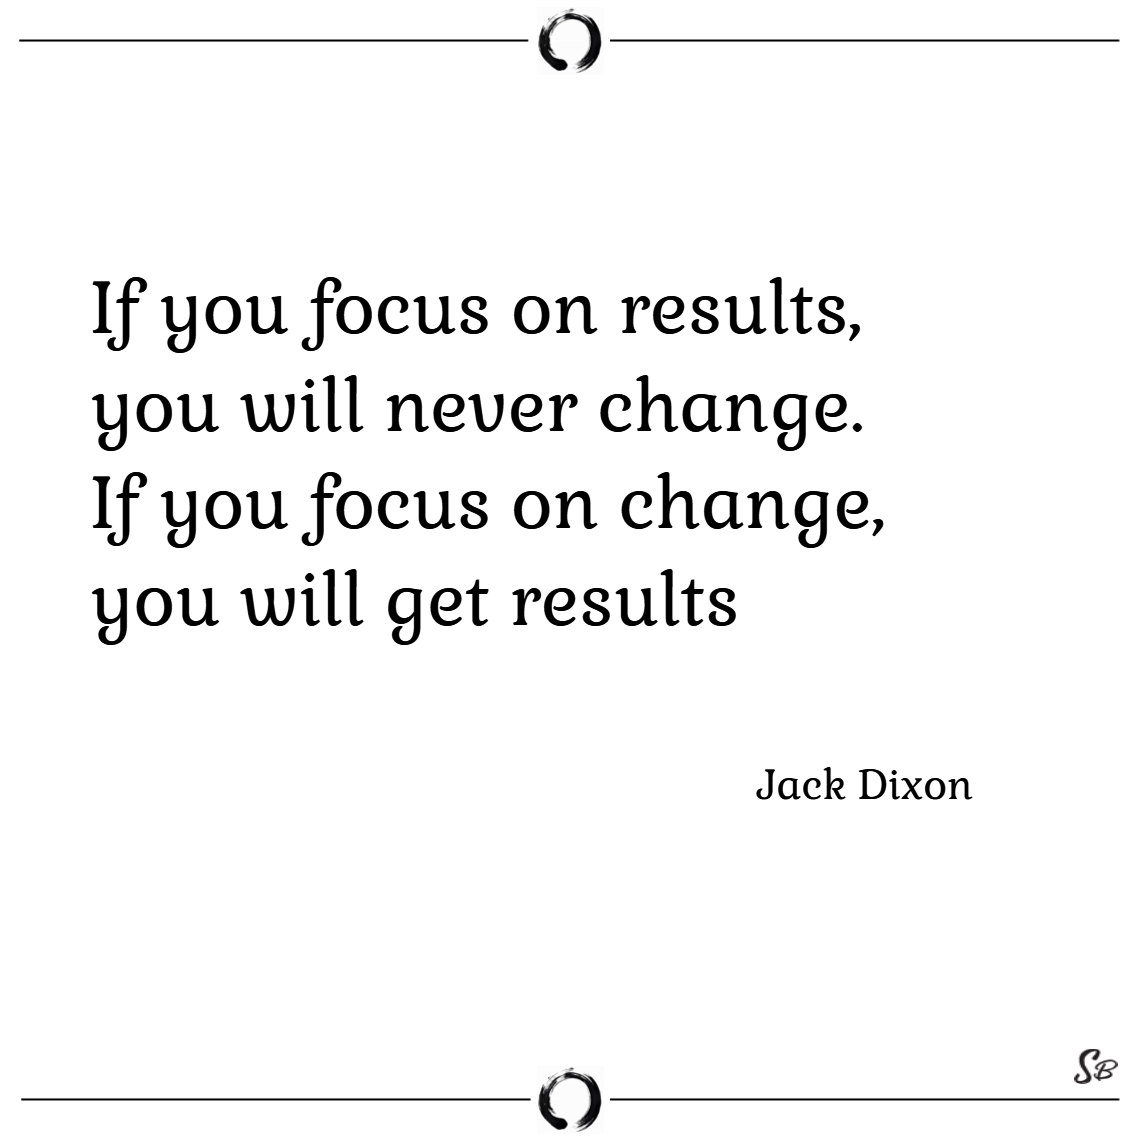 If you focus on results, you will never change. if you focus on change, you will get results. – jack dixon